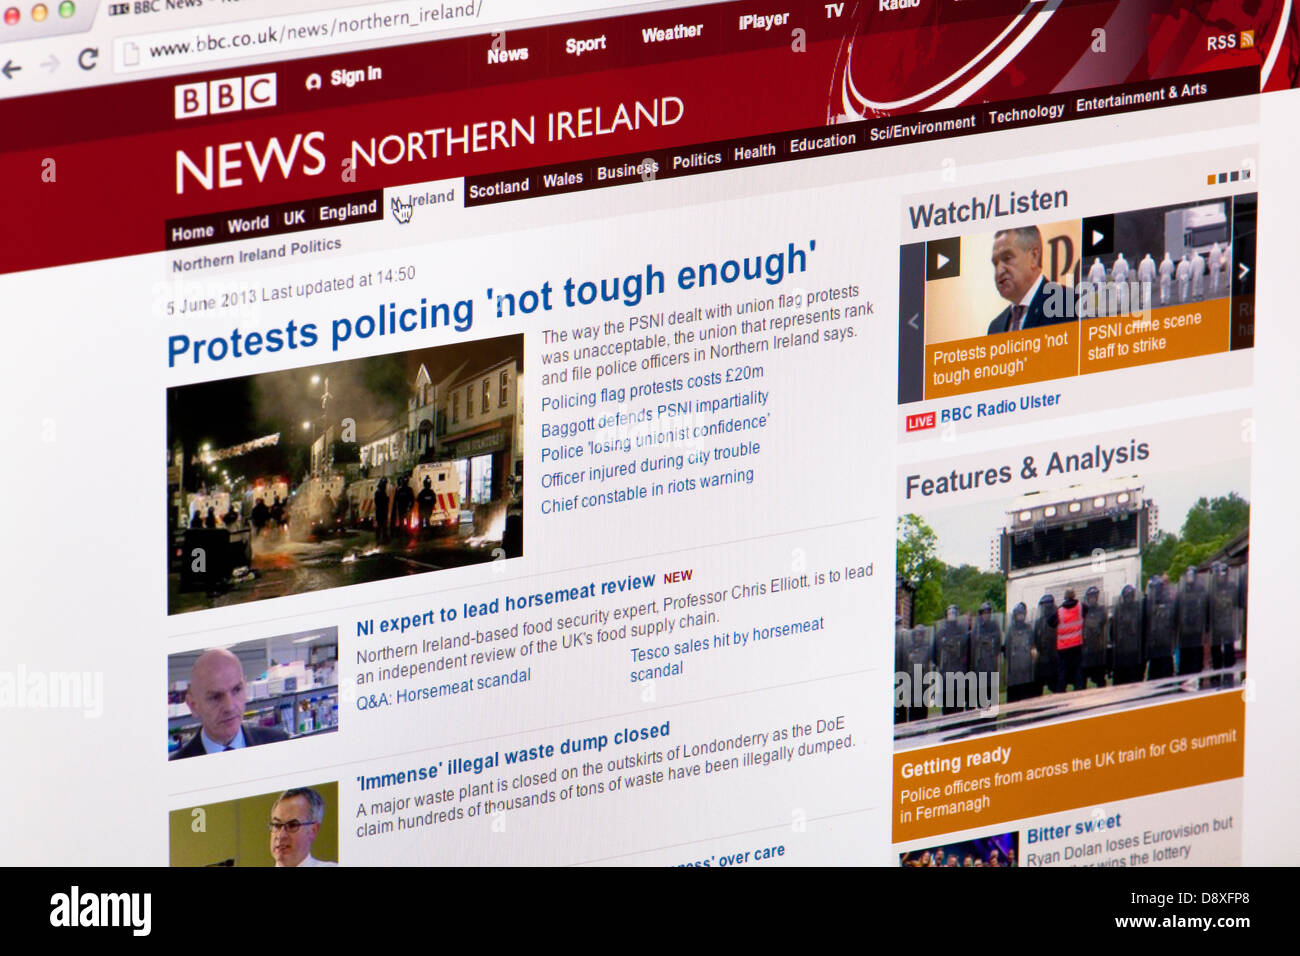 BBC News Northern Island home page website or web page on a laptop screen or computer monitor - Stock Image